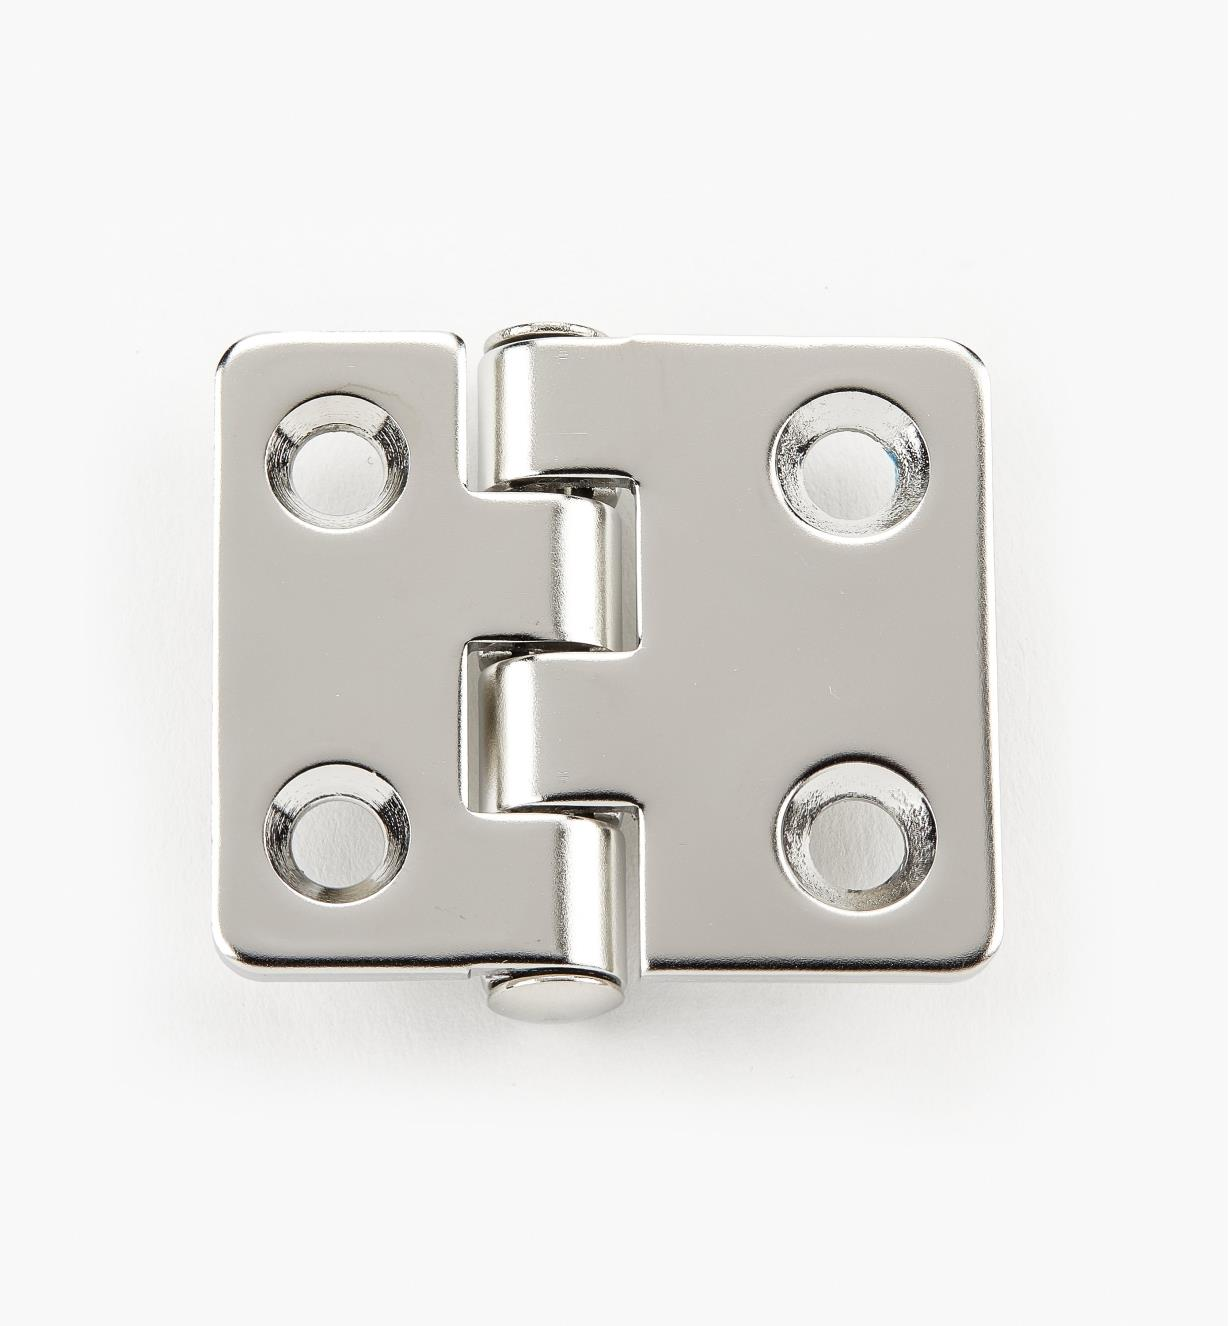 01W9818 - 38mm x 19mm x 25mm Recessed/Flush Hinge